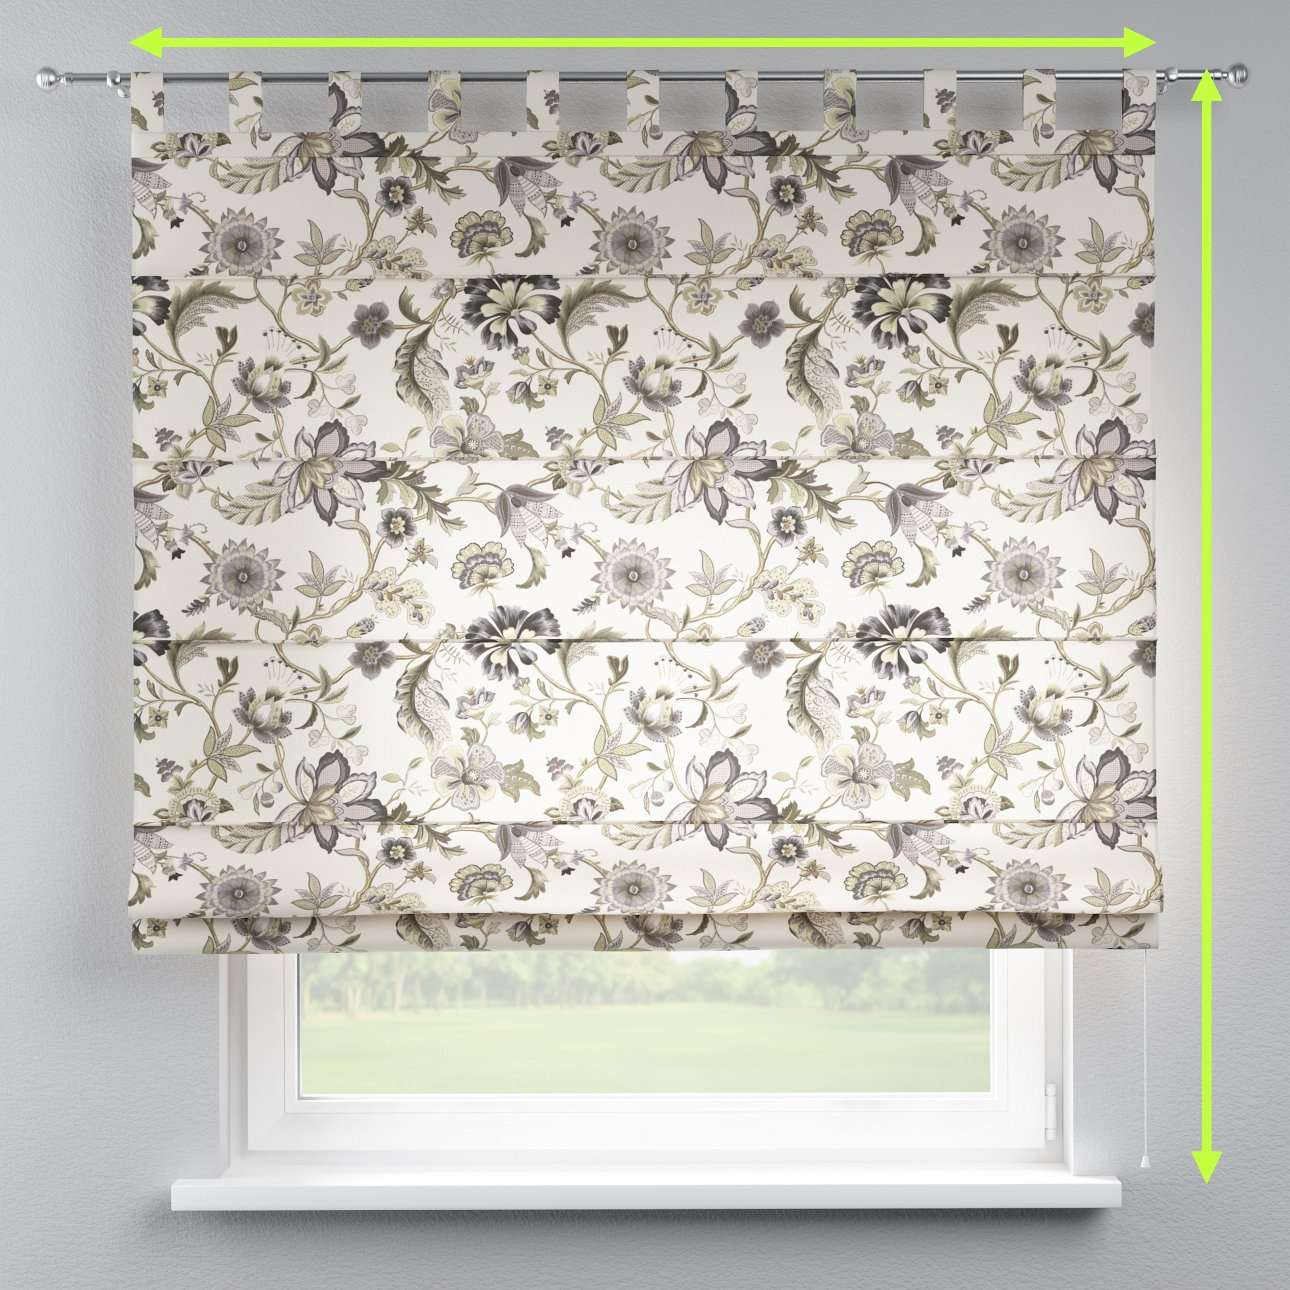 Verona tab top roman blind in collection Londres, fabric: 122-03